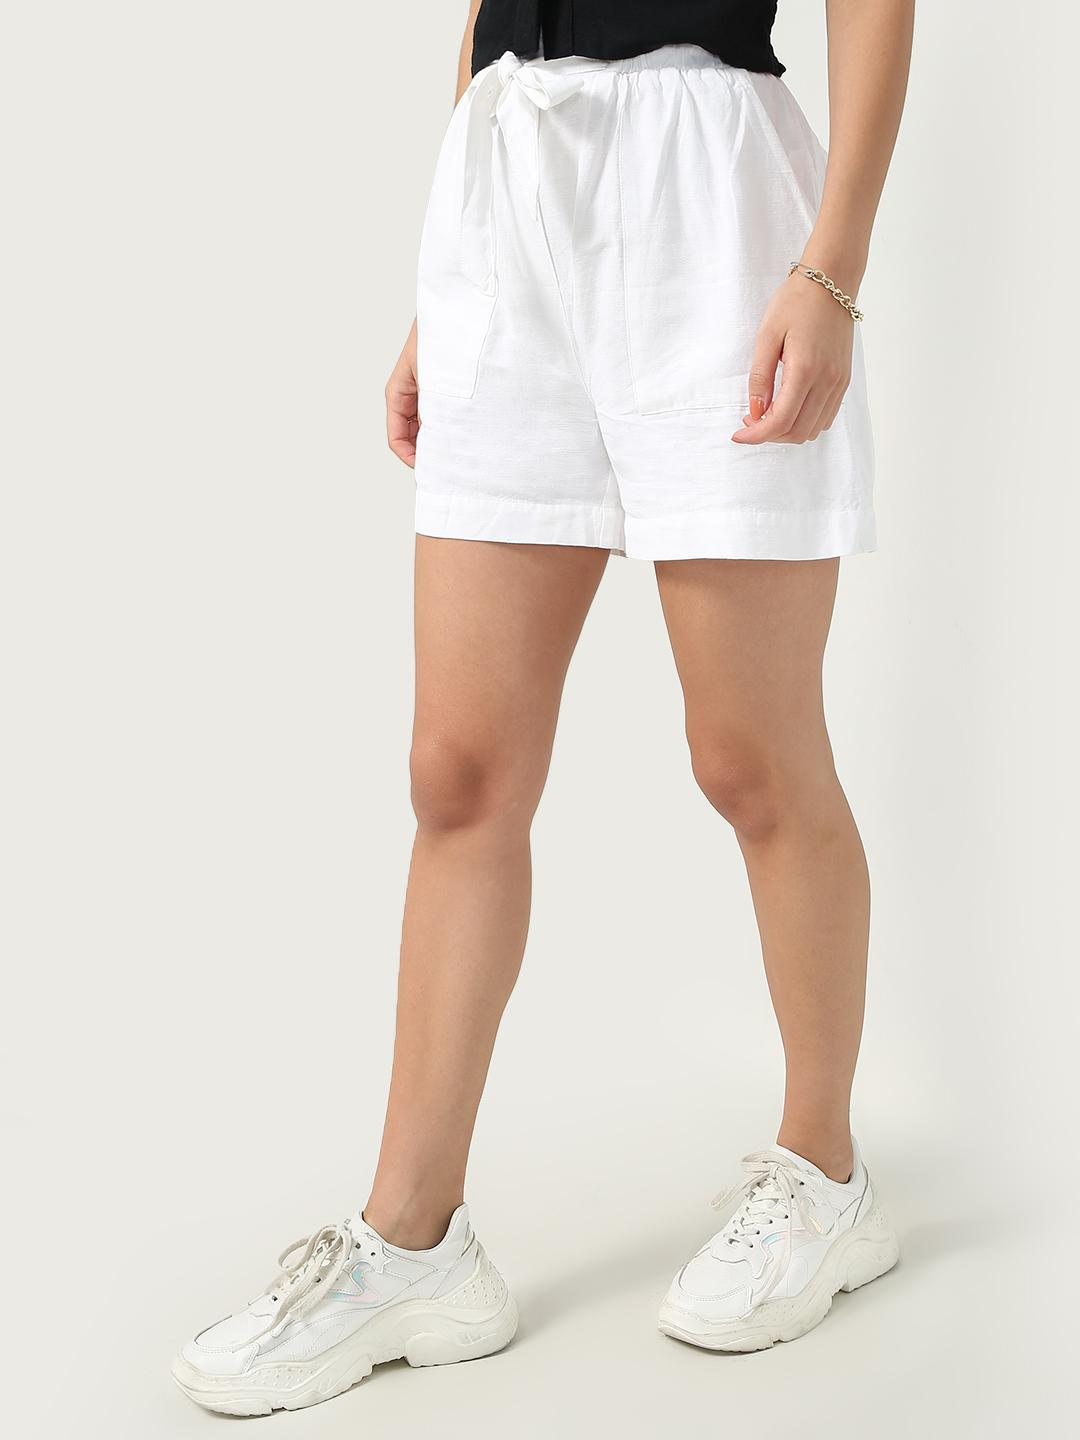 Oxolloxo White Tie Knot Day Shorts 1